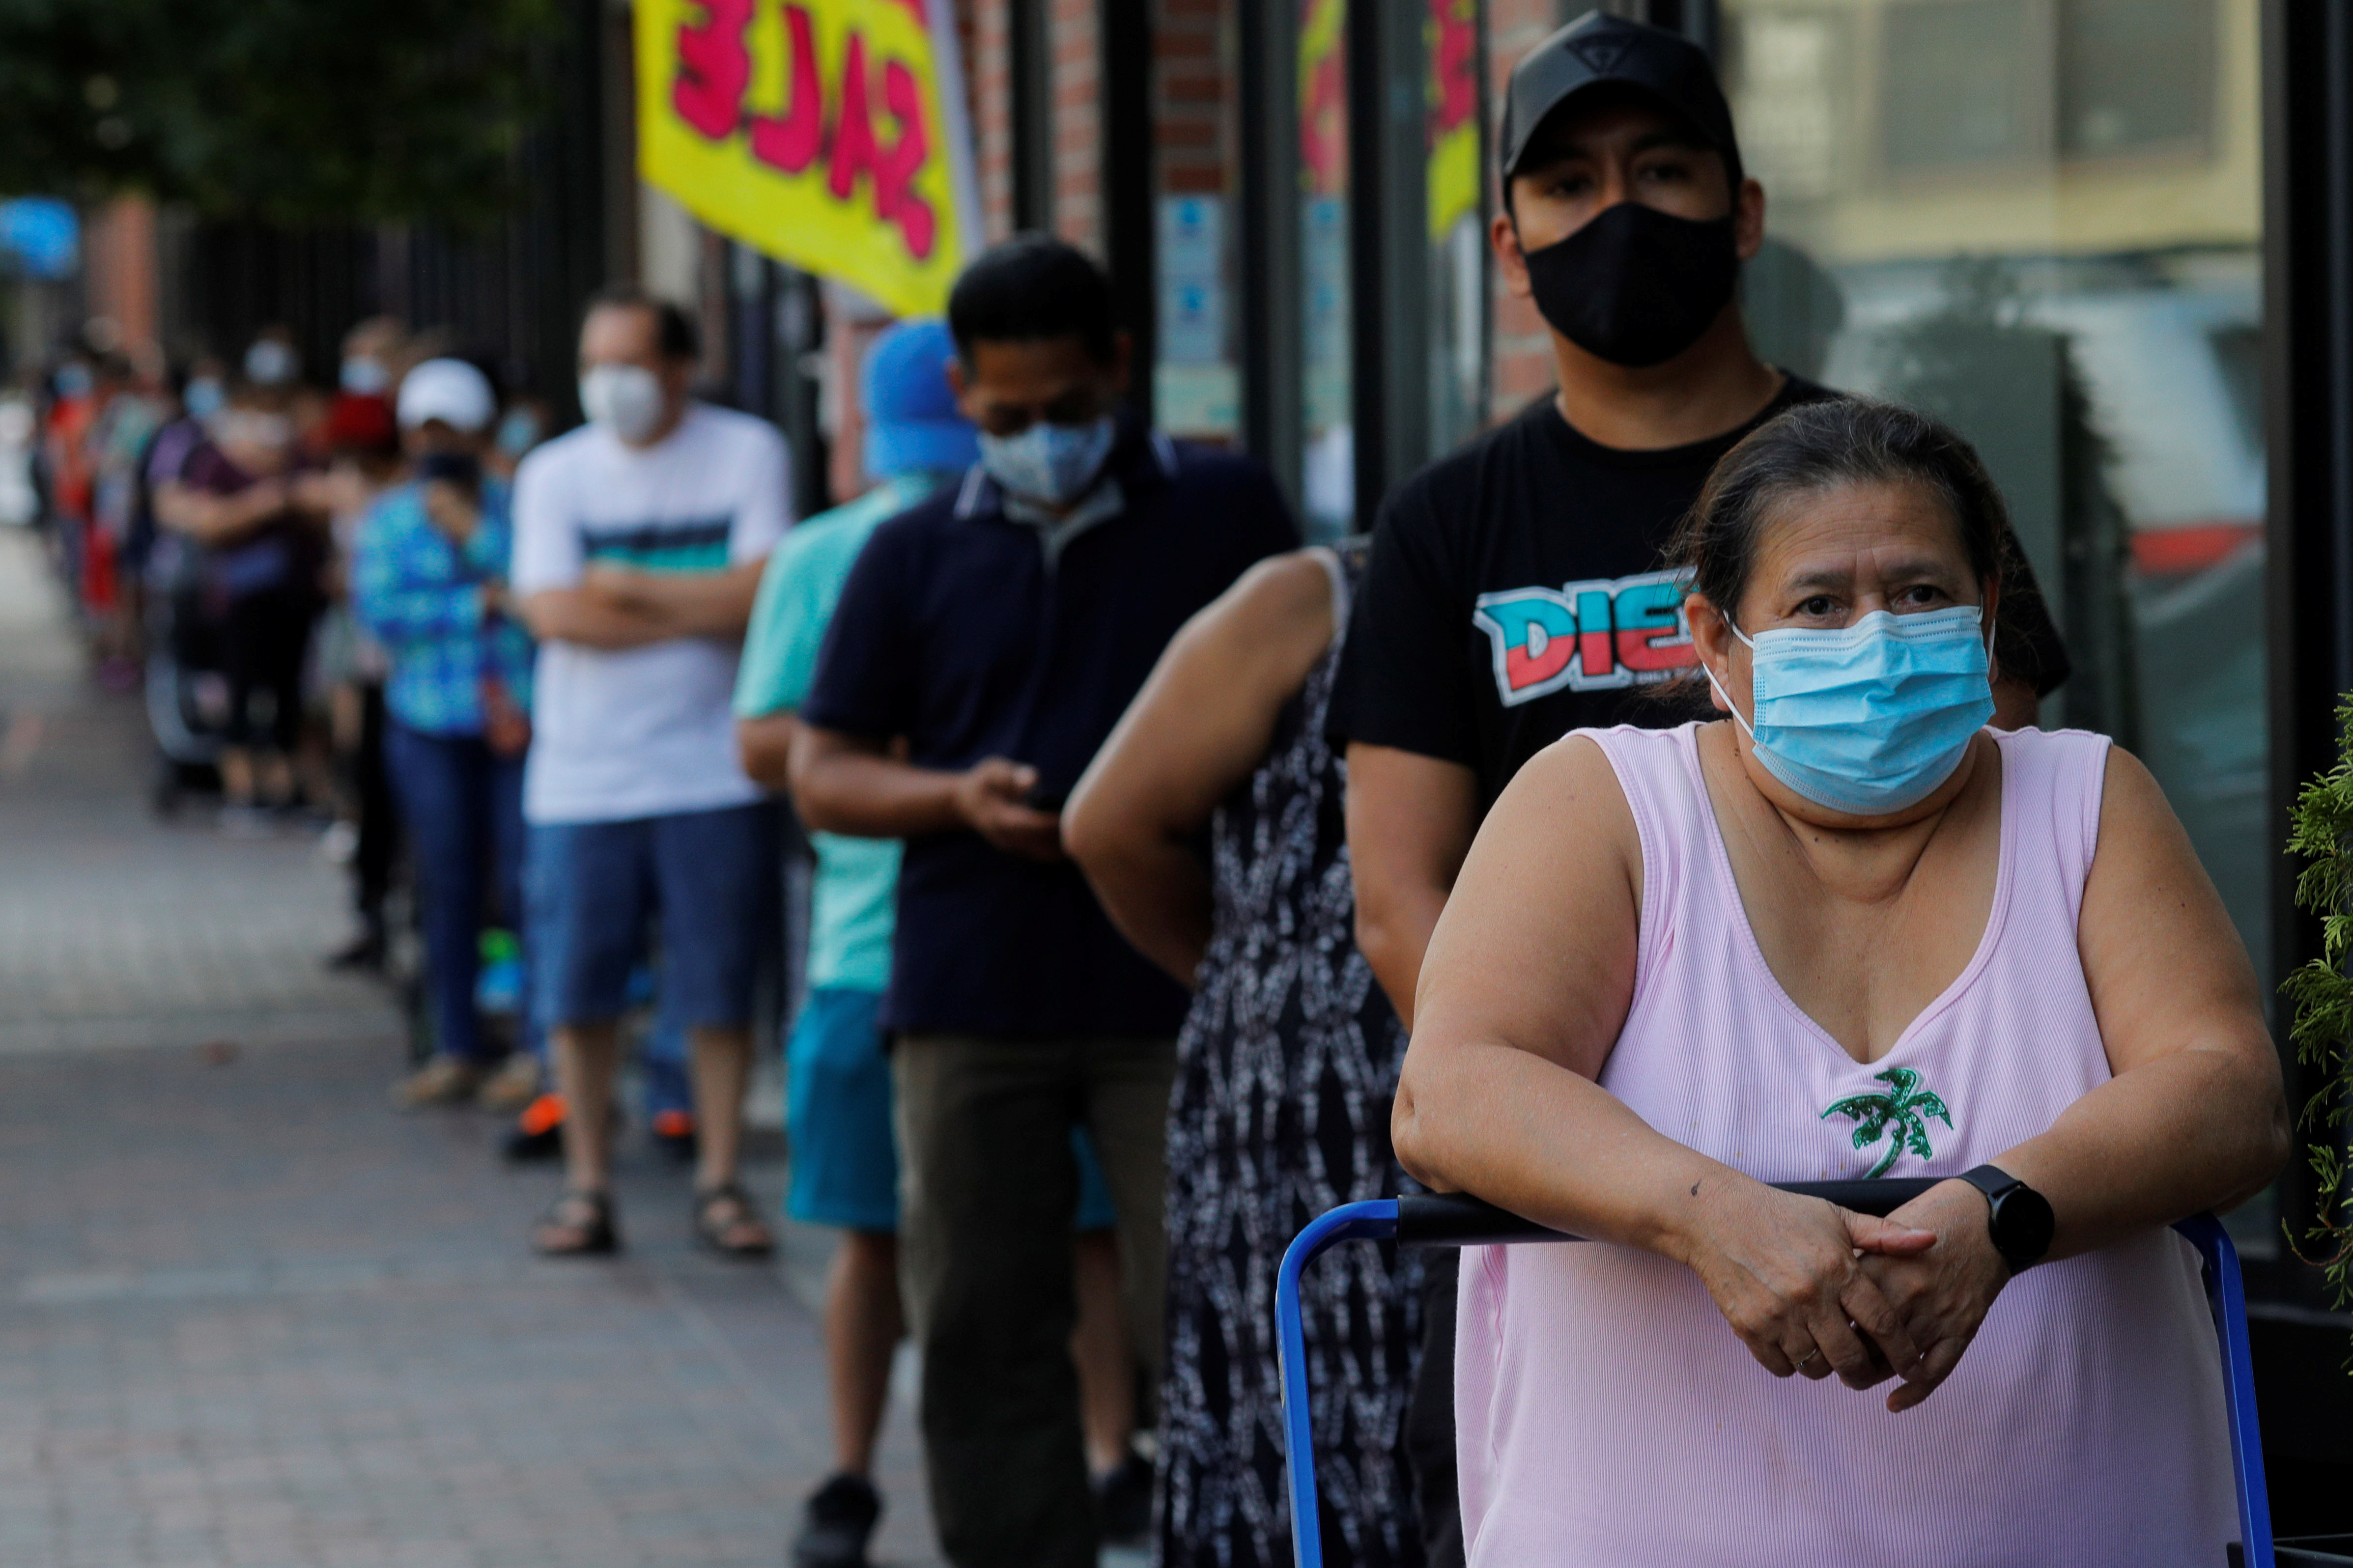 People wait in line for free groceries distributed by the Chelsea Collaborative in a city hard hit by the coronavirus disease (COVID-19) outbreak, in Chelsea, Massachusetts, U.S., July 22, 2020.   REUTERS/Brian Snyder - RC2OYH9PQJK8